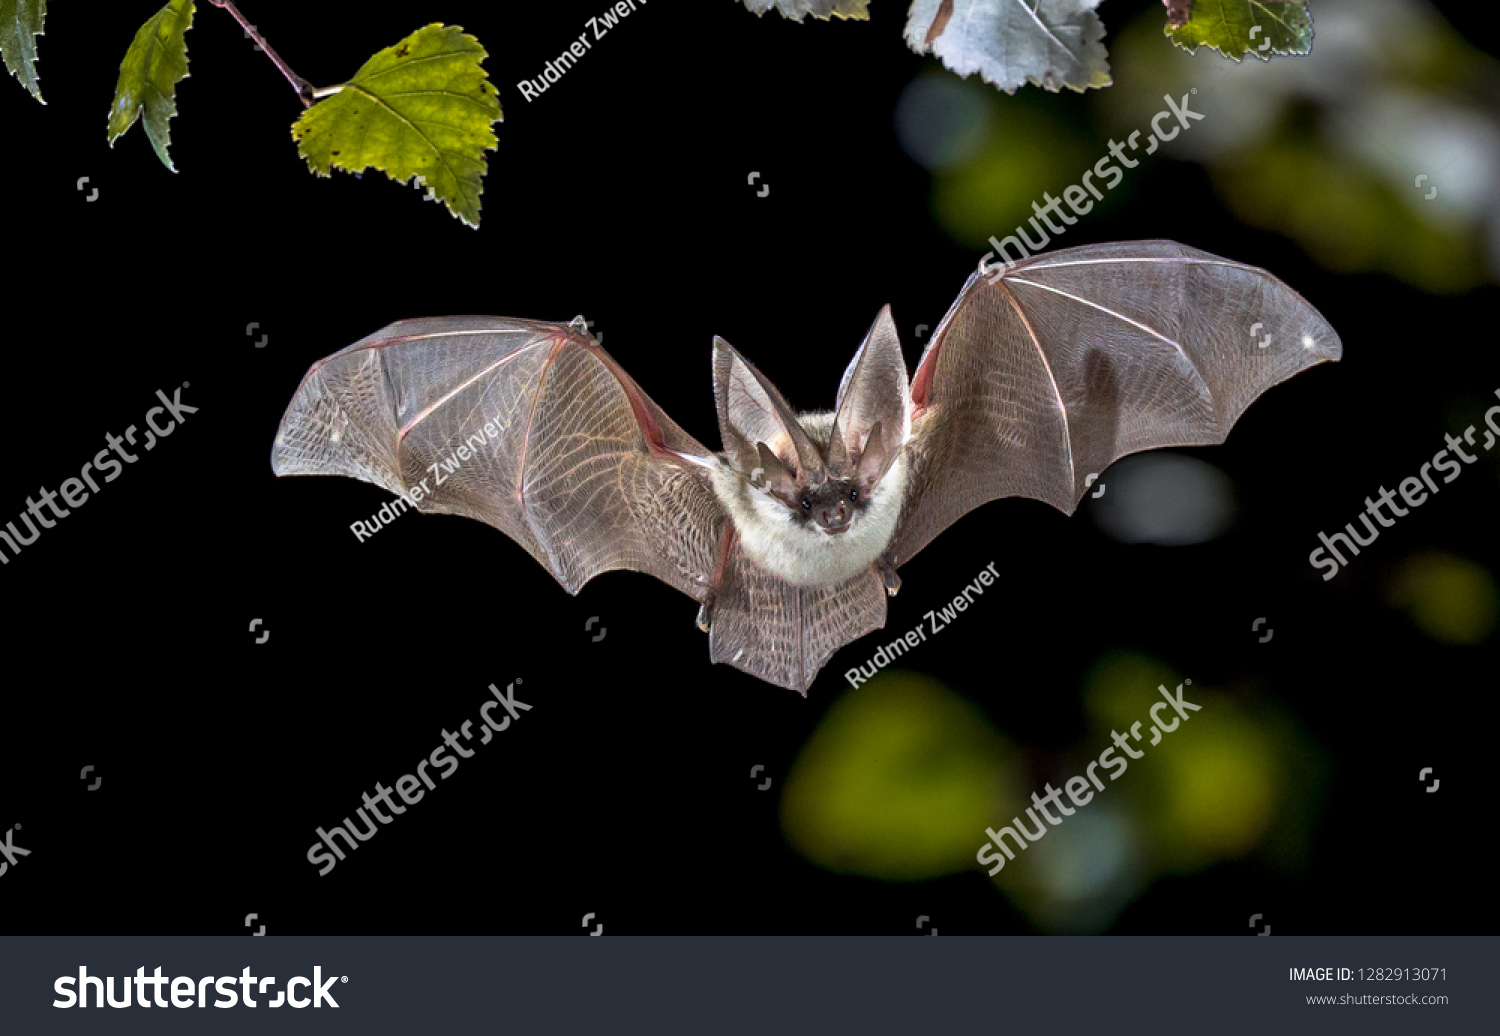 Flying bat hunting in forest. The grey long-eared bat (Plecotus austriacus) is a fairly large European bat. It has distinctive ears, long and with a distinctive fold. It hunts above woodland. #1282913071